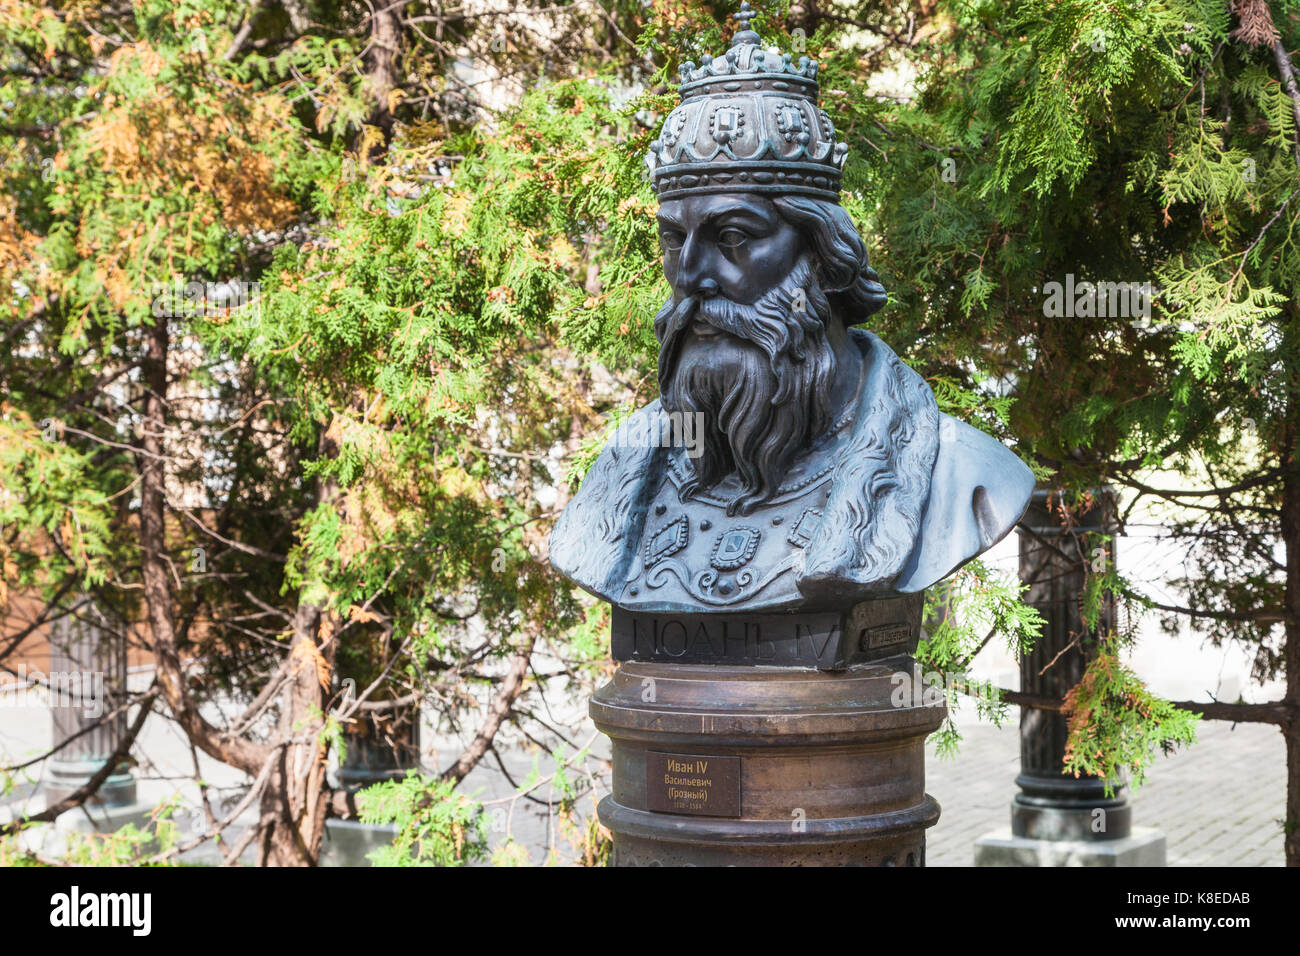 MOSCOW, RUSSIA - SEPTEMBER 16, 2017: Ivan the Terrible bust on Alley of the Rulers of Russia in courtyard of Military - Stock Image